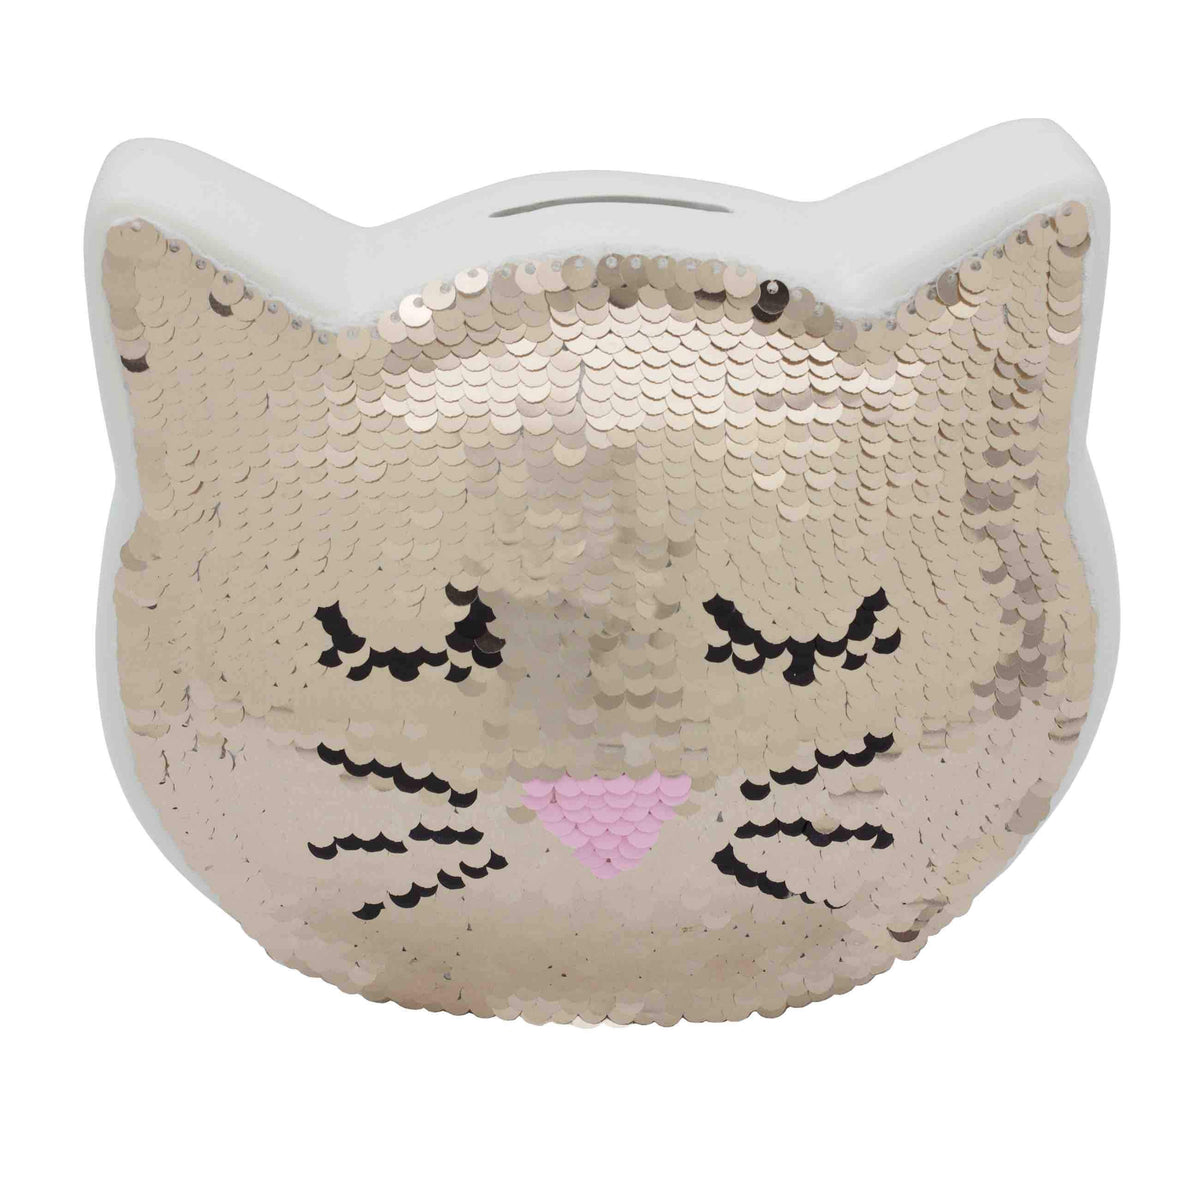 Sequin Cat Money Bank